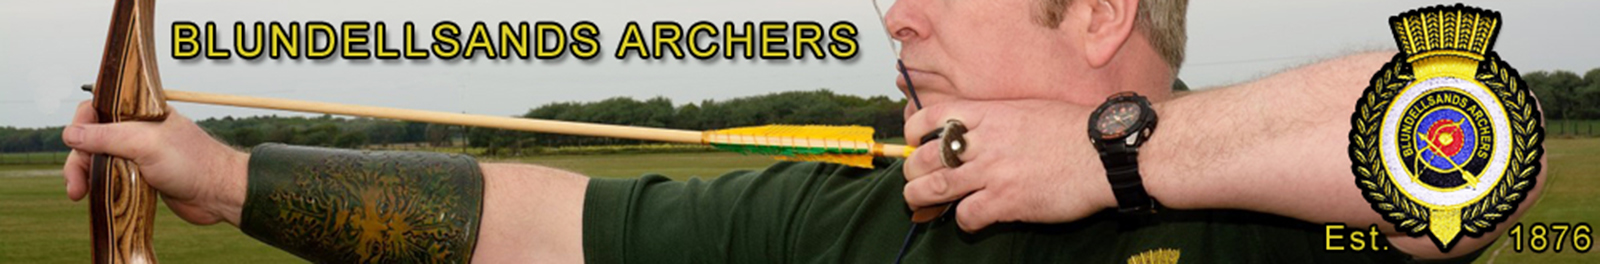 Blundellsands Archers